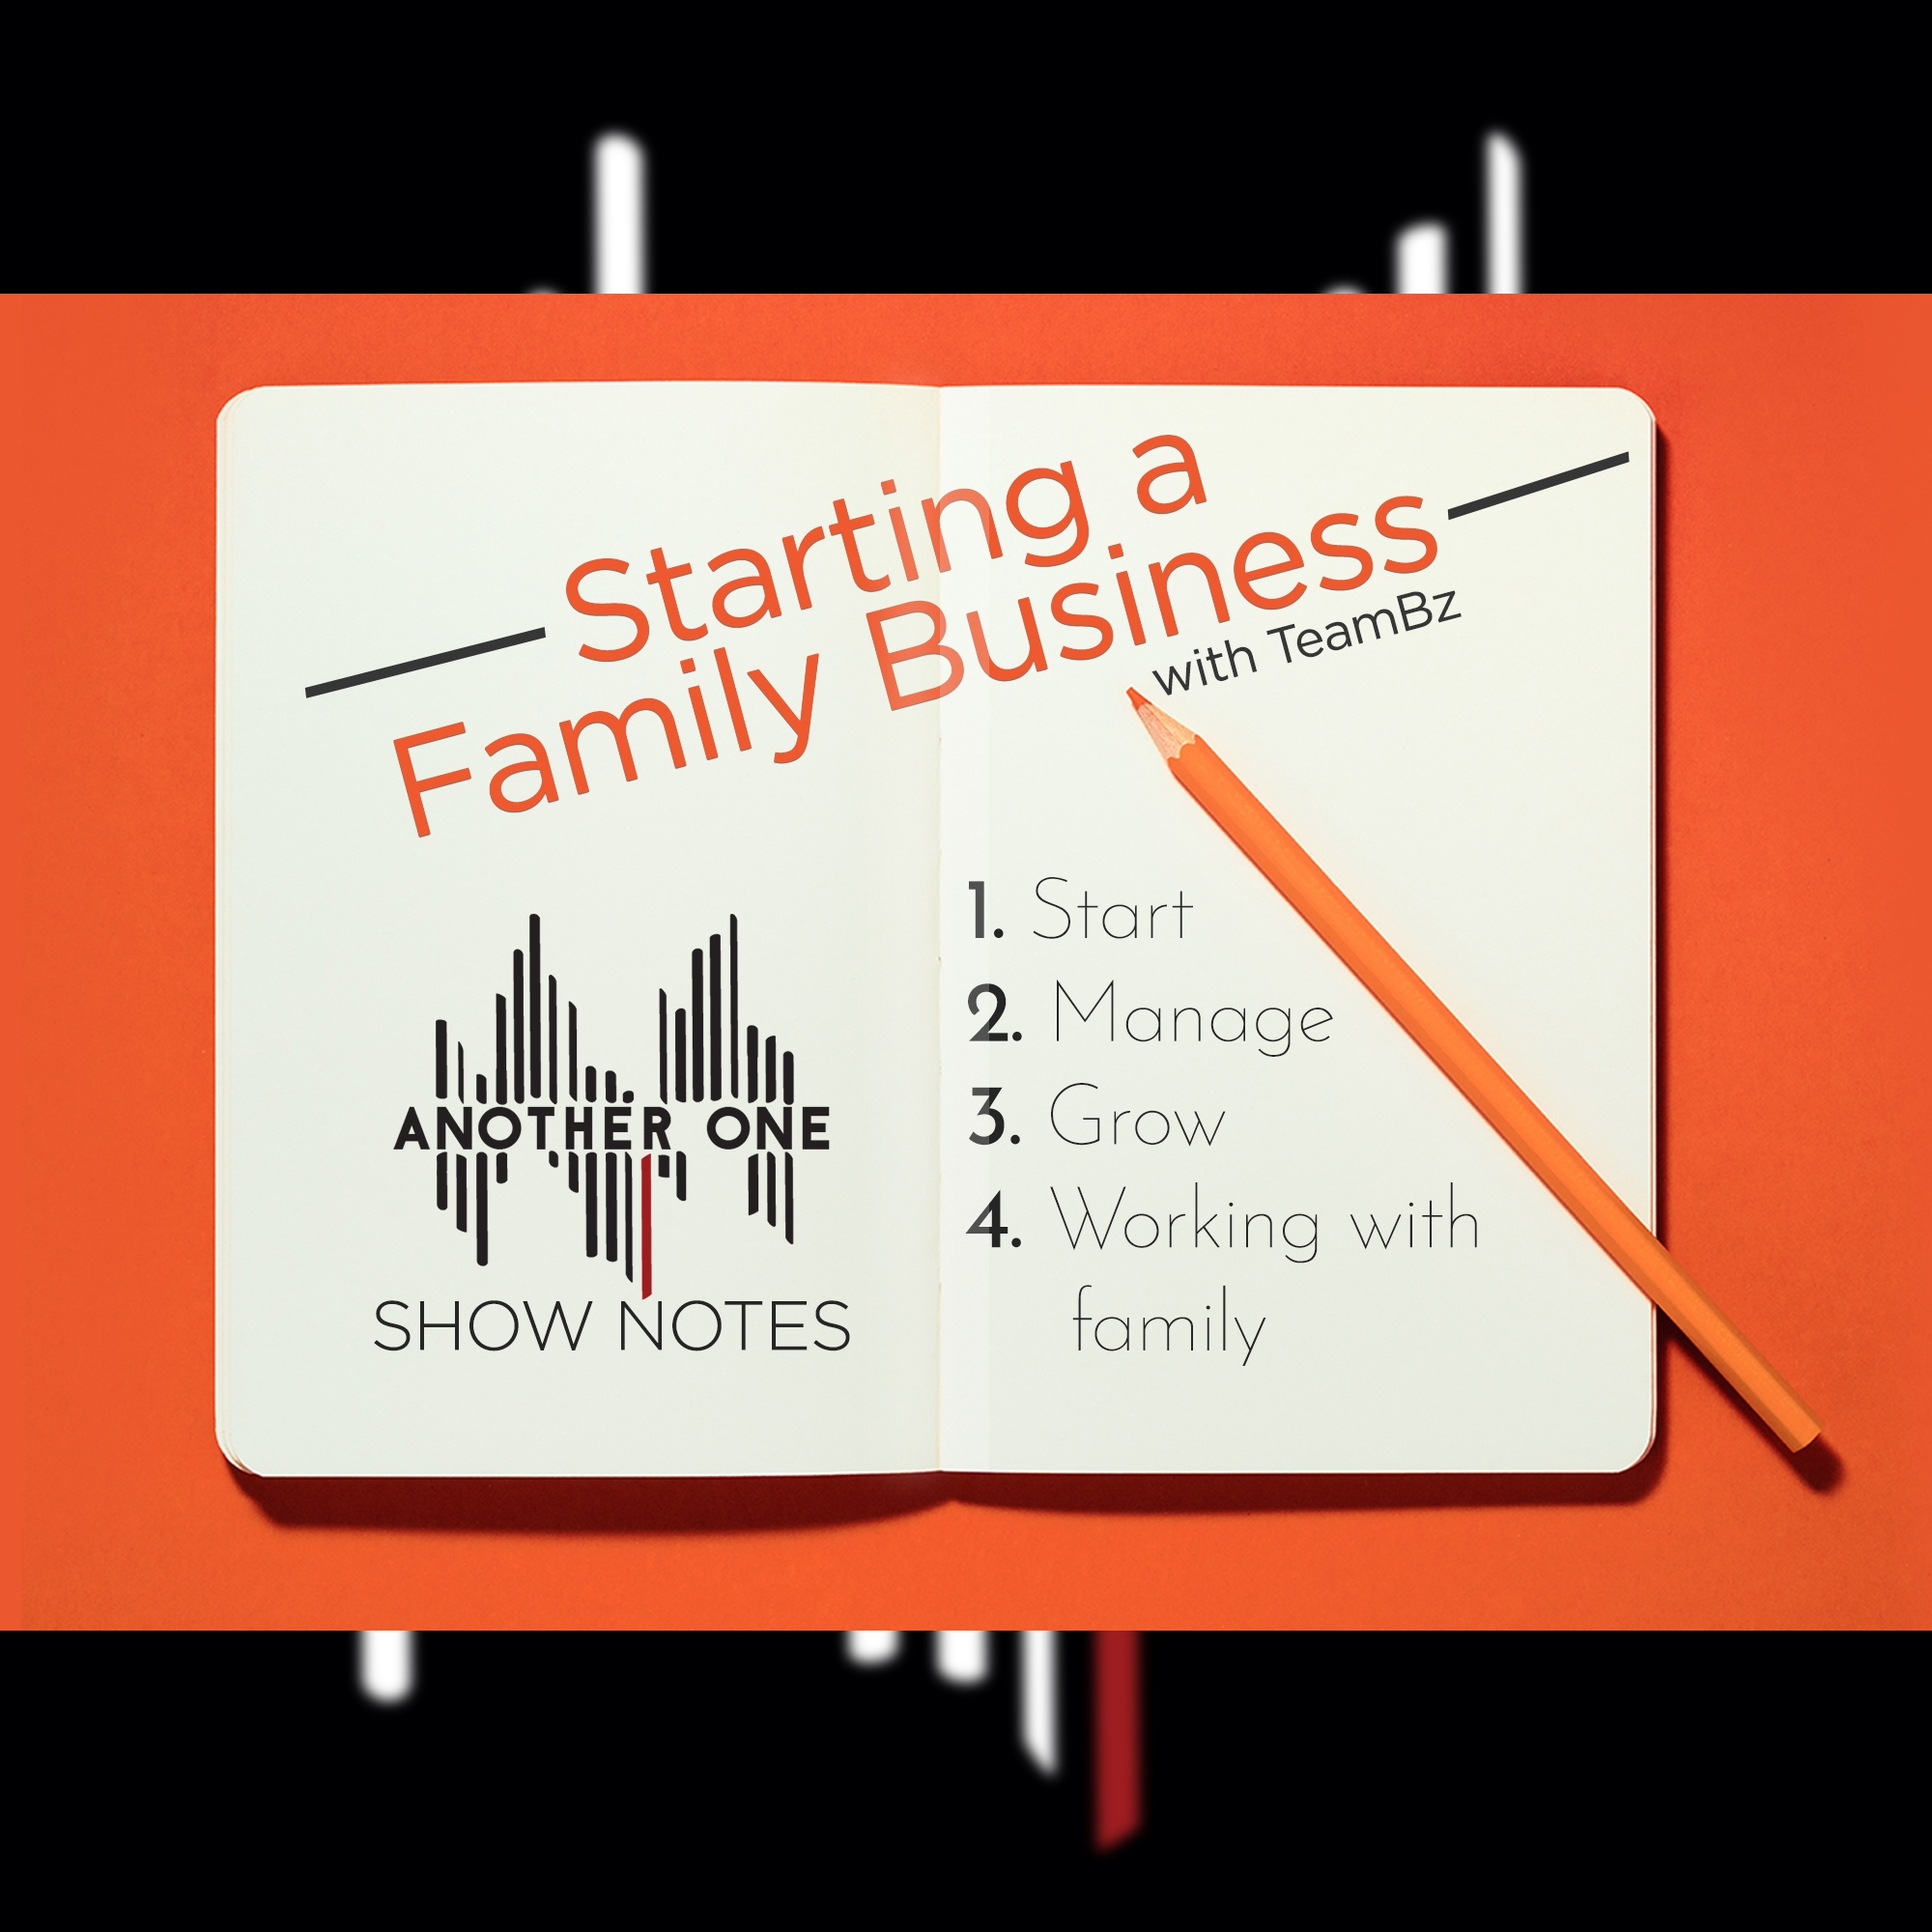 Starting A Family Business Show Notes